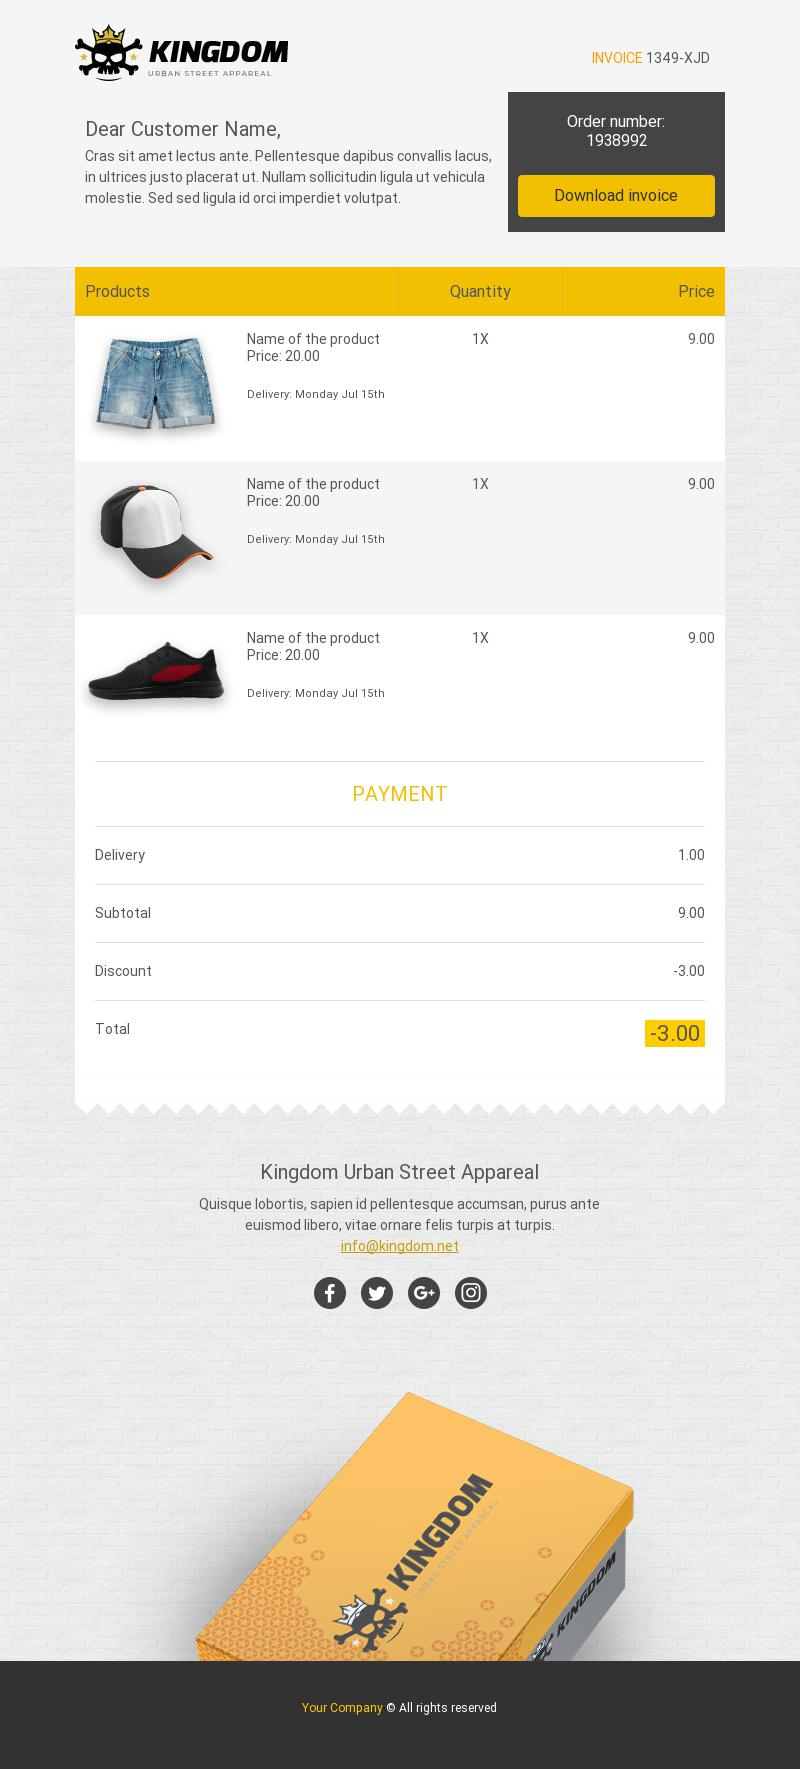 Product Invoice Transactional Email Template For